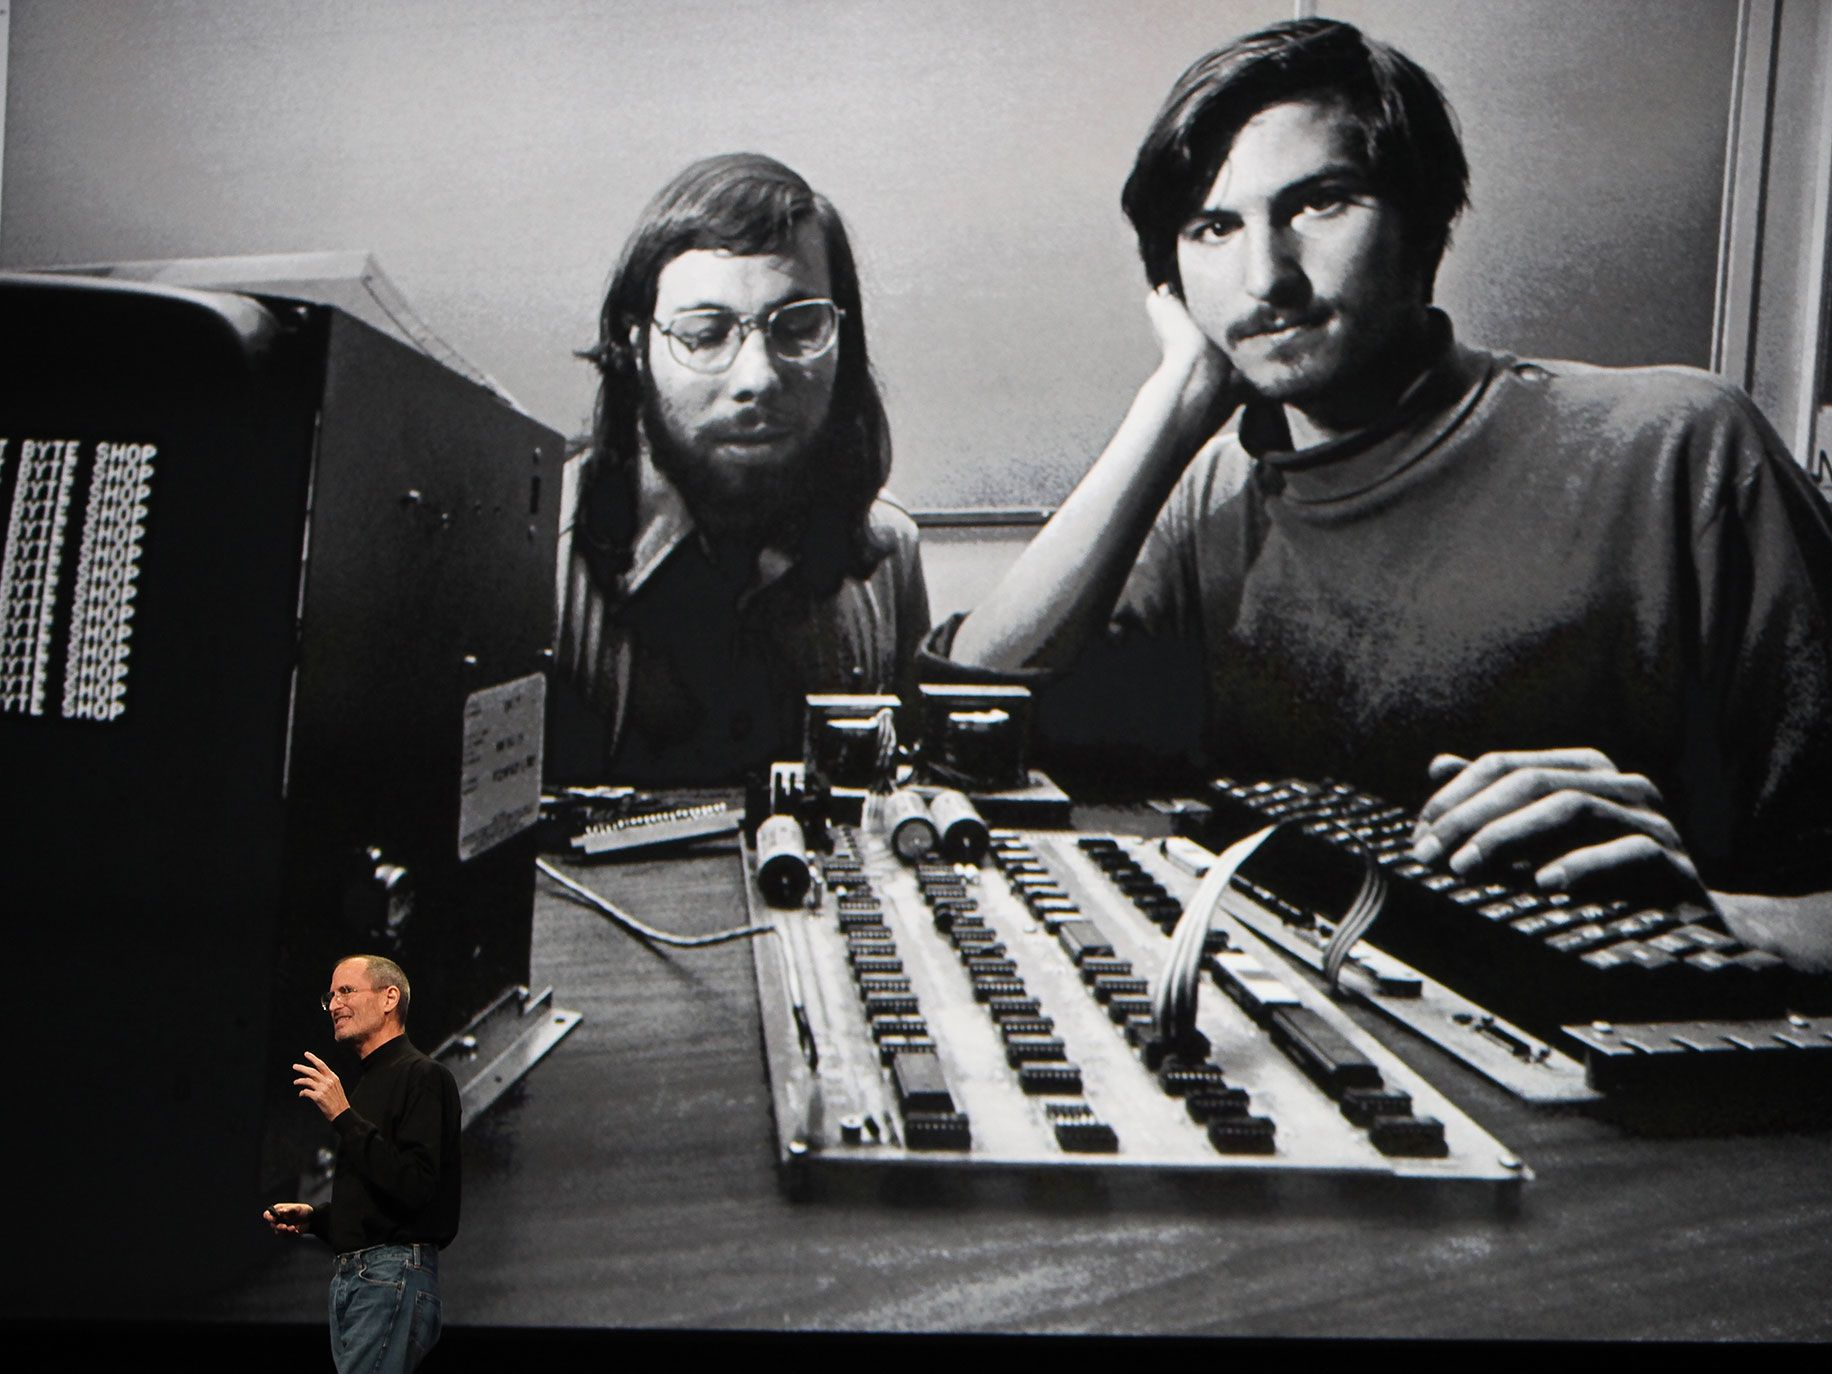 Steve Jobs speaks in front of a file photograph of himself and Apple co-founder Steve Wozniak with the first Apple computer.